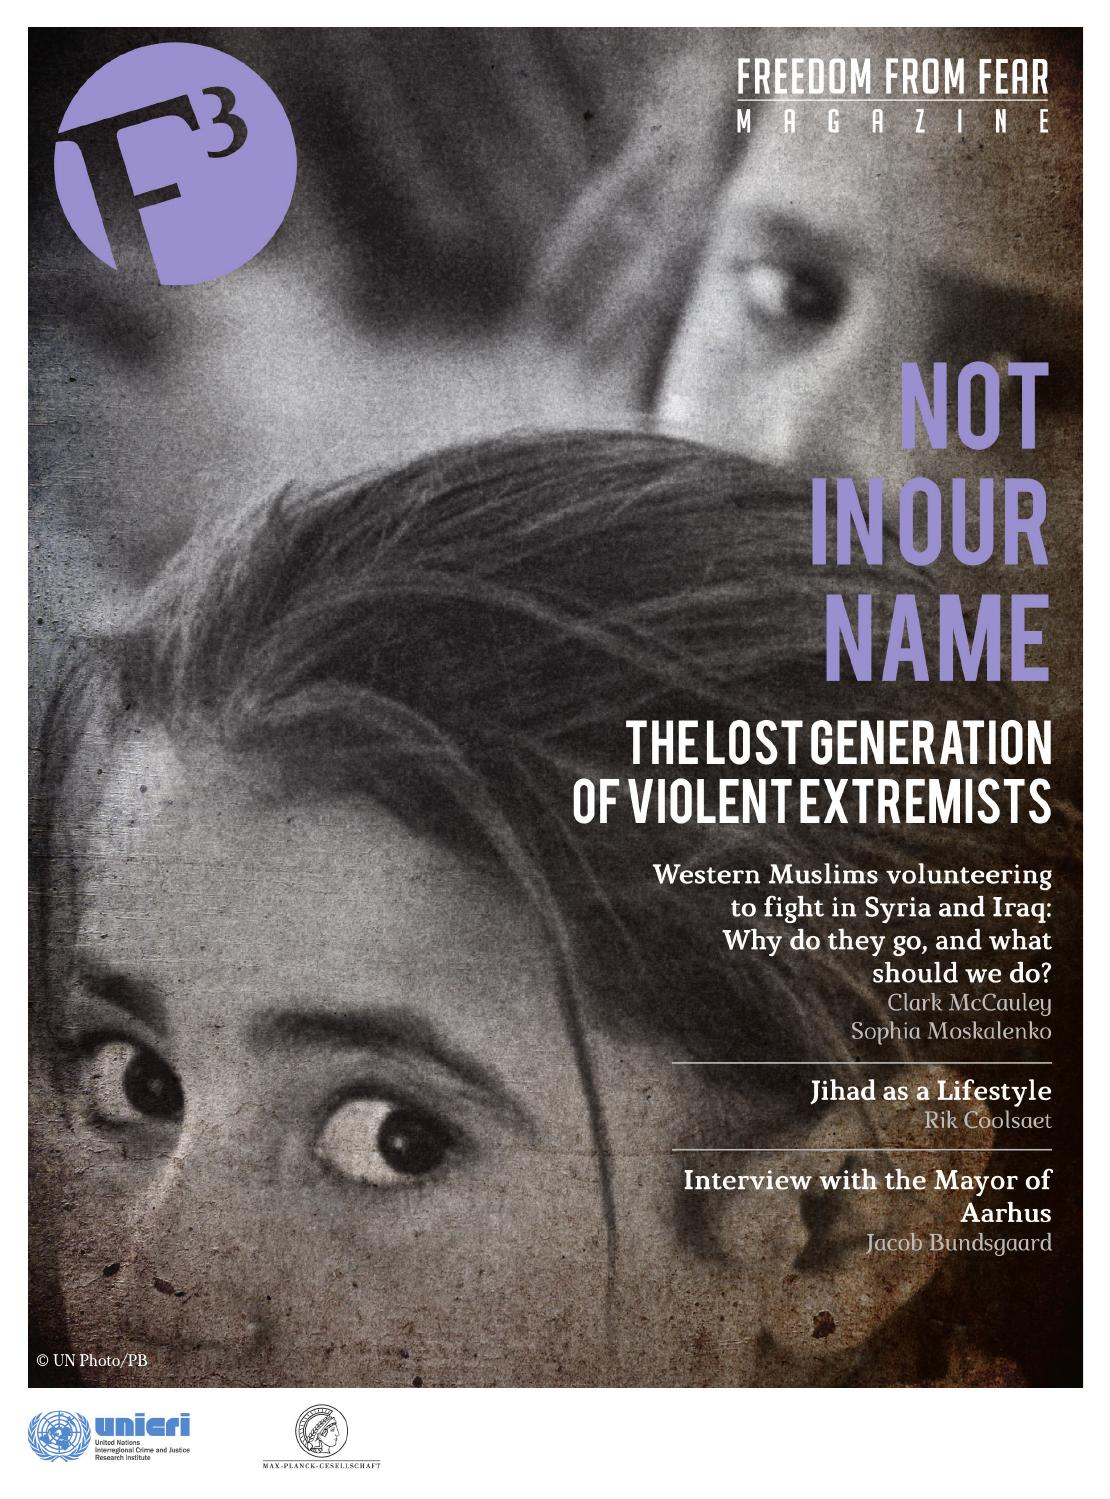 7a9b7dfb3 F3 Magazine - Not in our name. The lost generation of violent extremists by  F3magazine - issuu